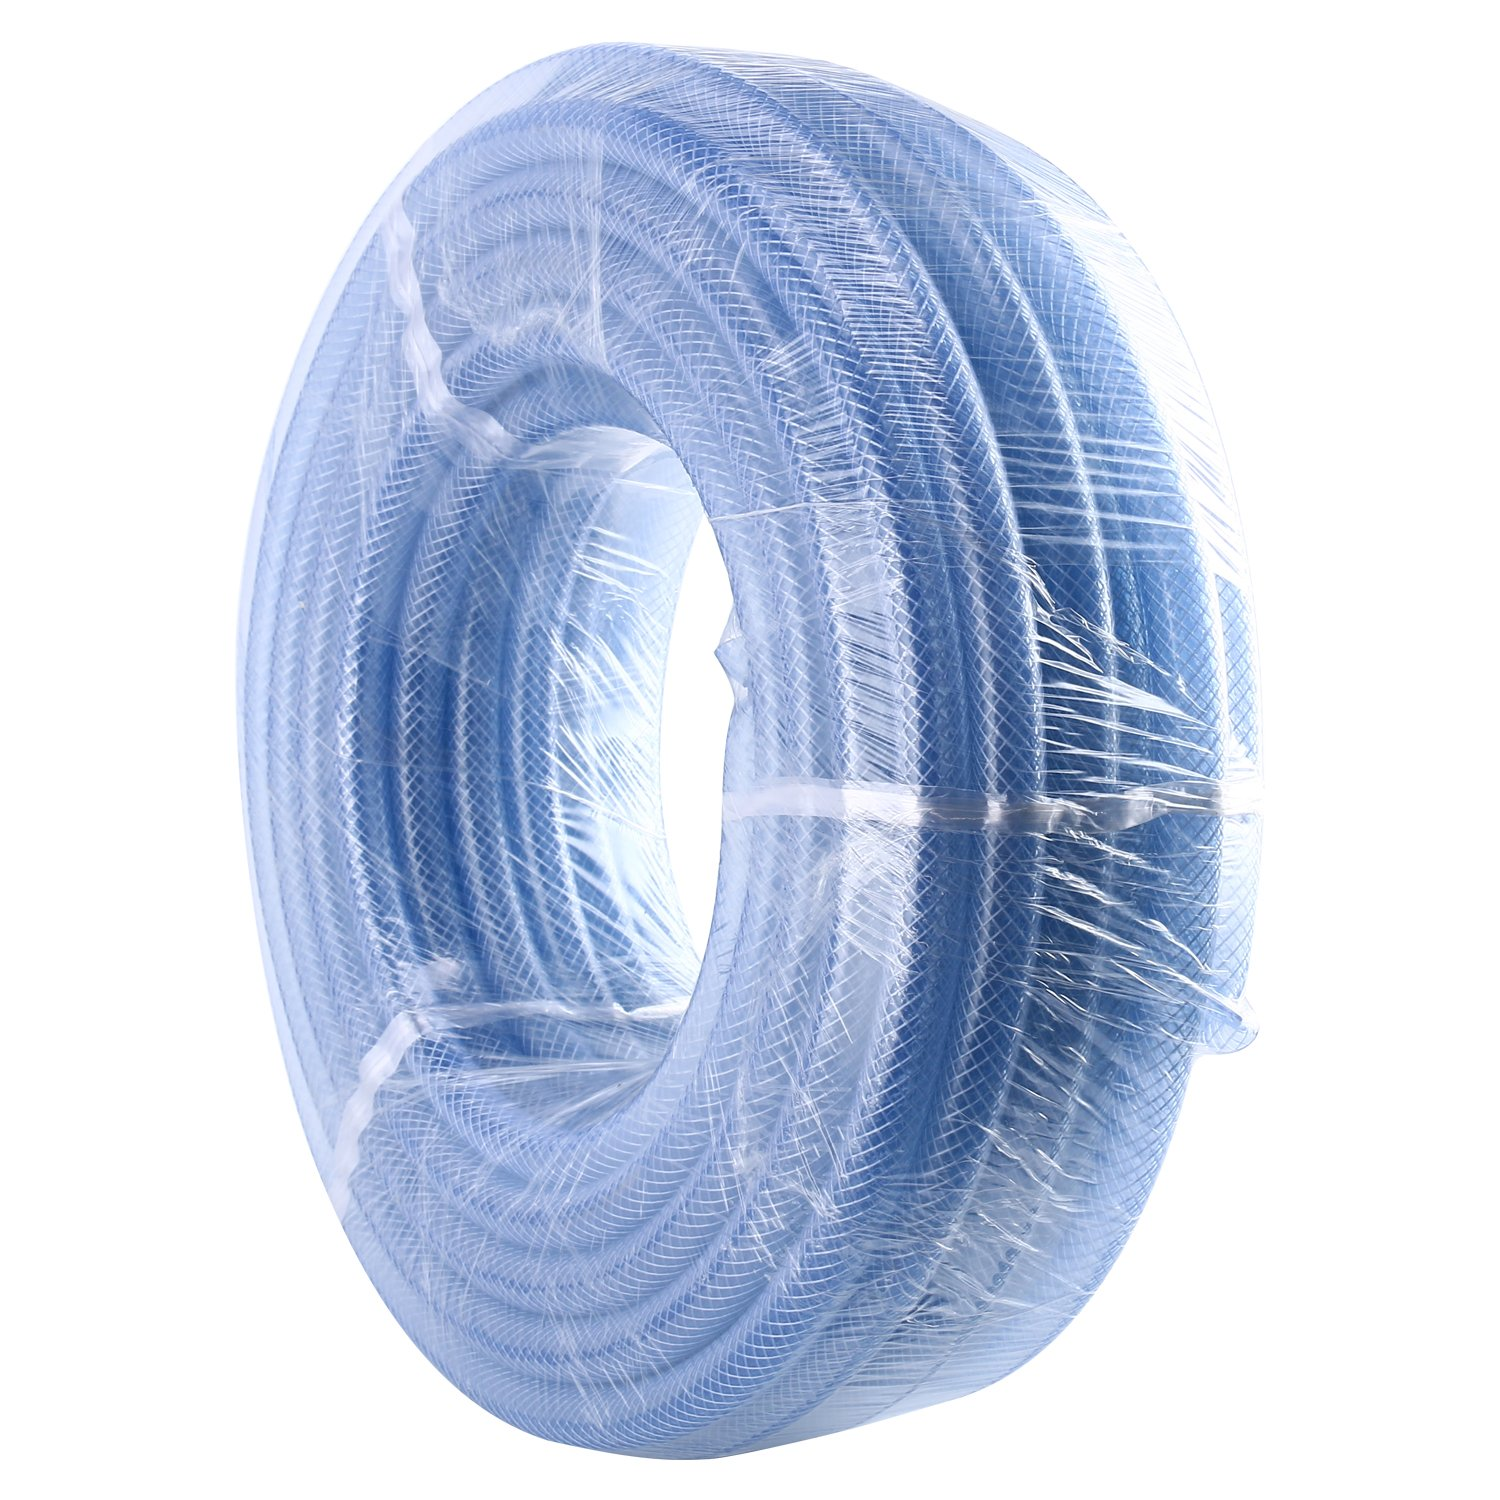 Homend High Pressure Braided Clear Flexible Industrial PVC Tubing Heavy Duty UV Chemical Resistant Vinyl Hose Water (3/8